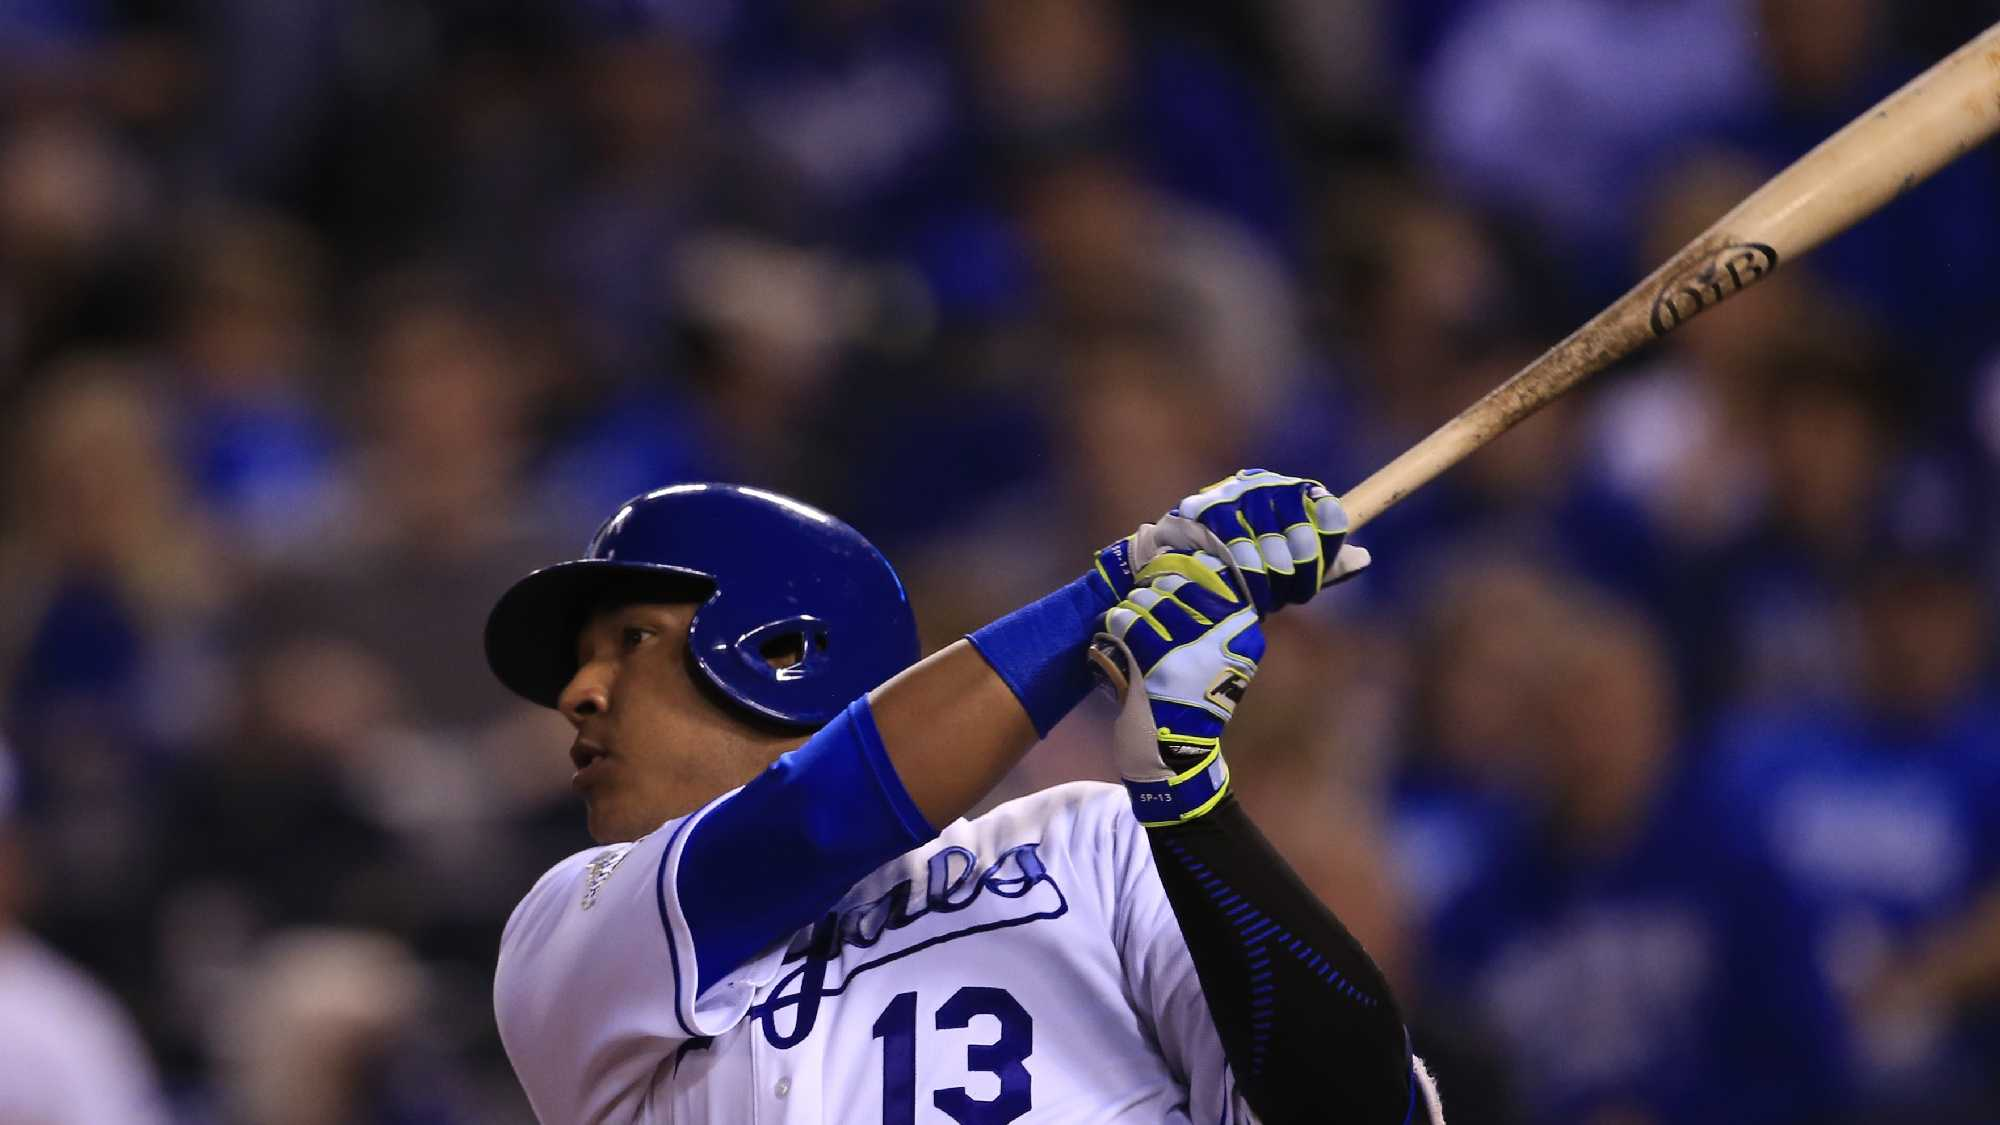 Kansas City Royals' Salvador Perez hits a three-run home run off Detroit Tigers relief pitcher Blaine Hardy (65) during the fifth inning of a baseball game at Kauffman Stadium in Kansas City, Mo., Tuesday, April 19, 2016. (AP Photo/Orlin Wagner)